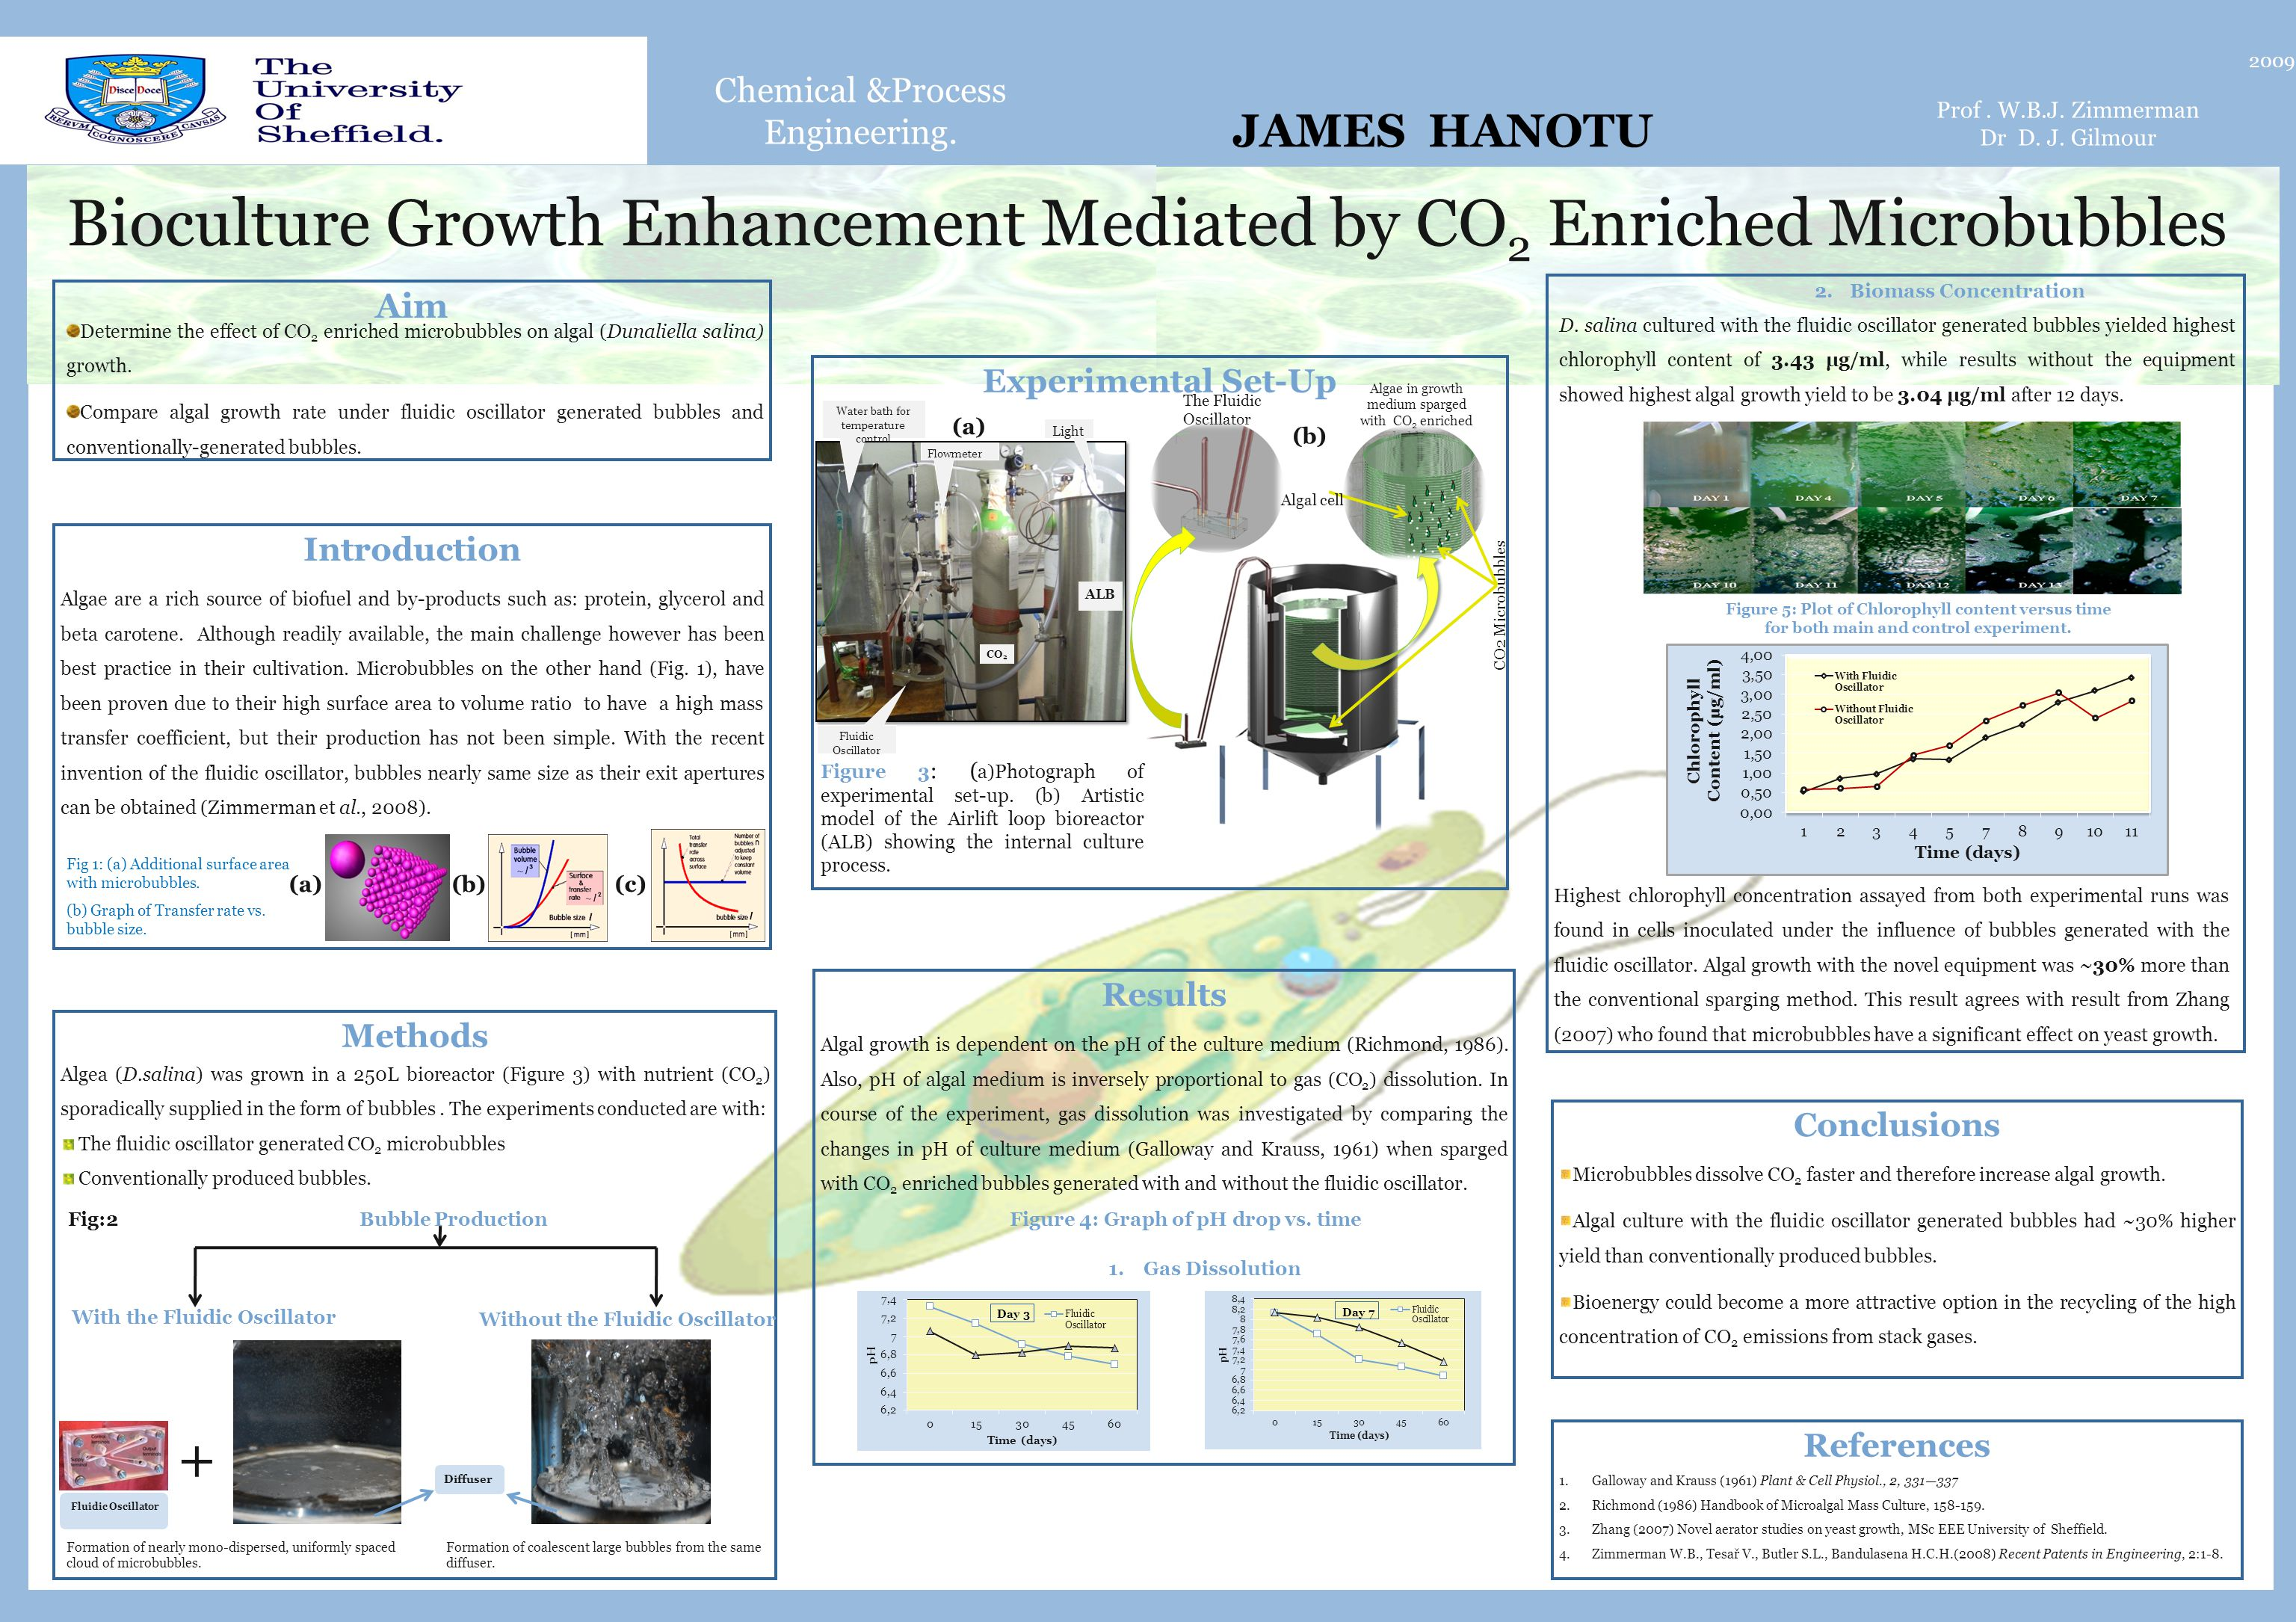 Chemical &Process Engineering. Bioculture Growth Enhancement Mediated by CO 2 Enriched Microbubbles 2009 Prof. W.B.J. Zimmerman Dr D. J. Gilmour Intro